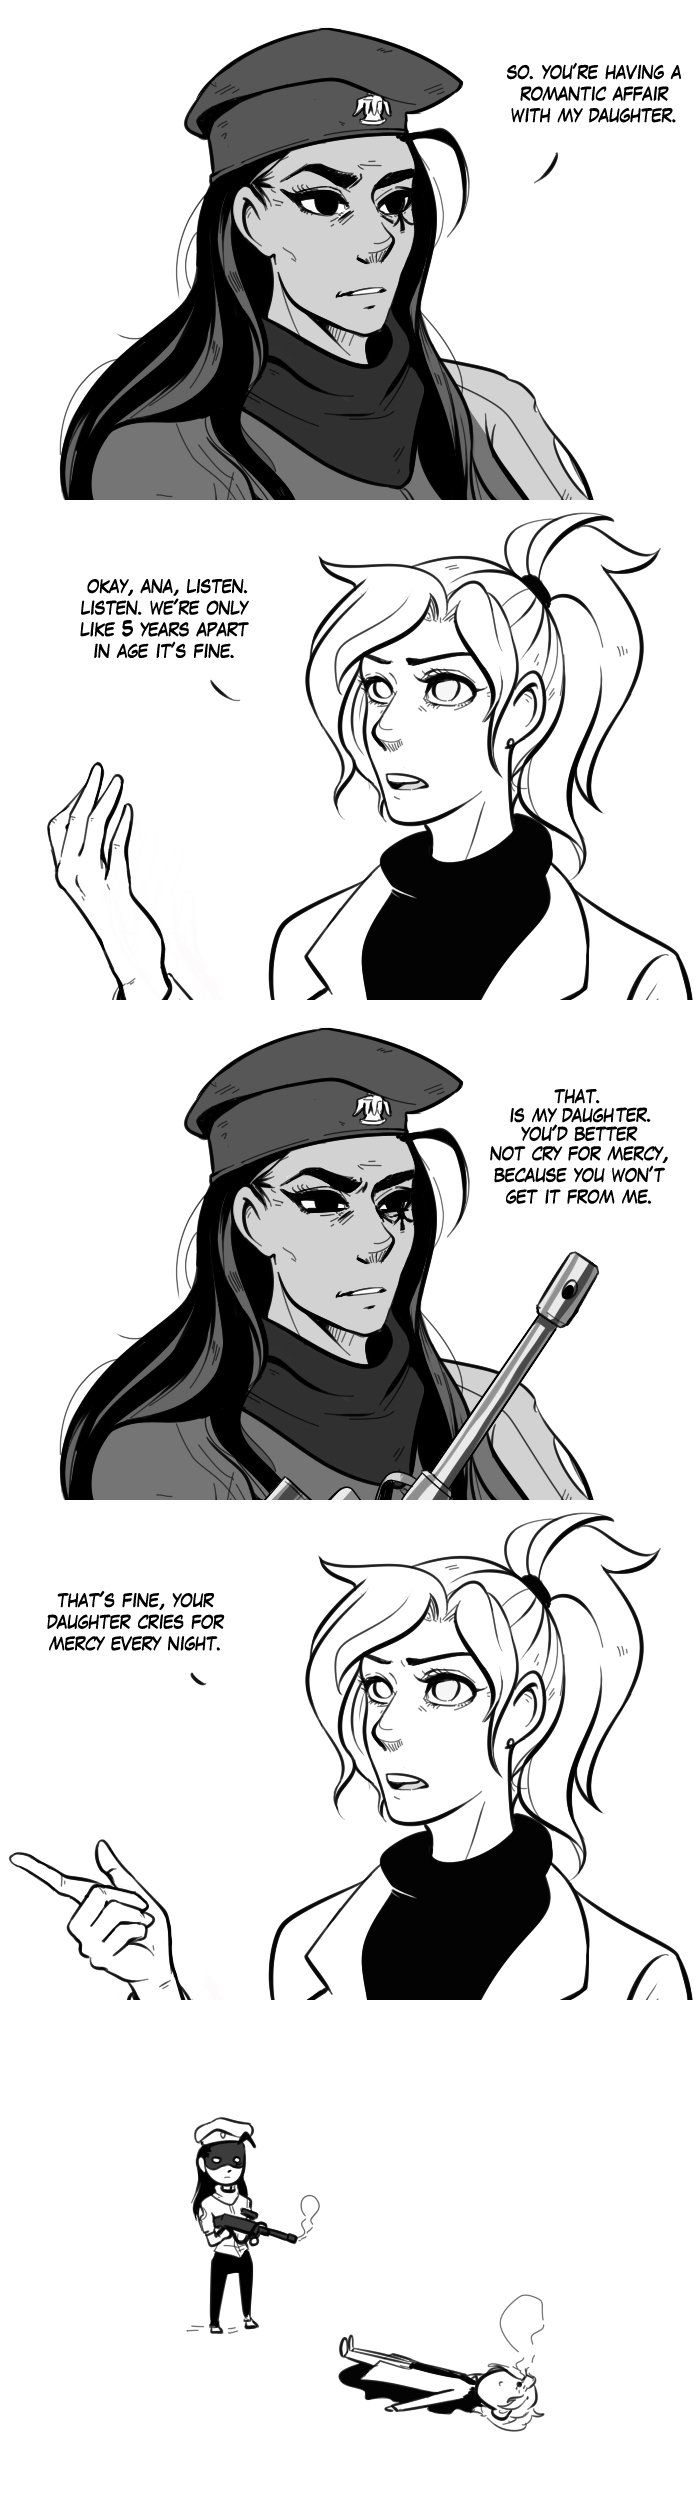 Overwatch- Ana and Mercy comic.